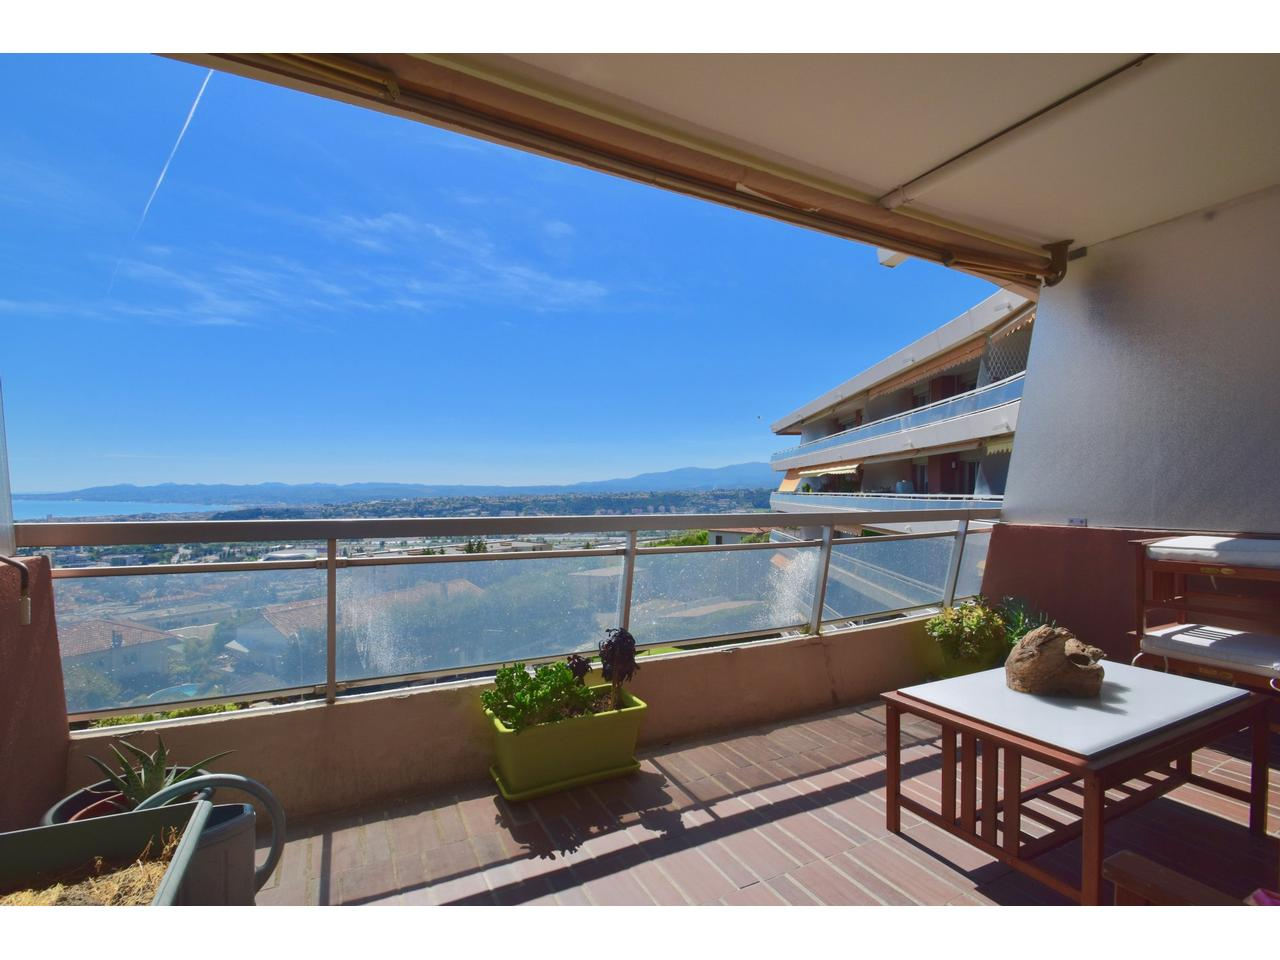 Immobilier nice vue mer appartement nice belles terres for Immobilier avec terrasse